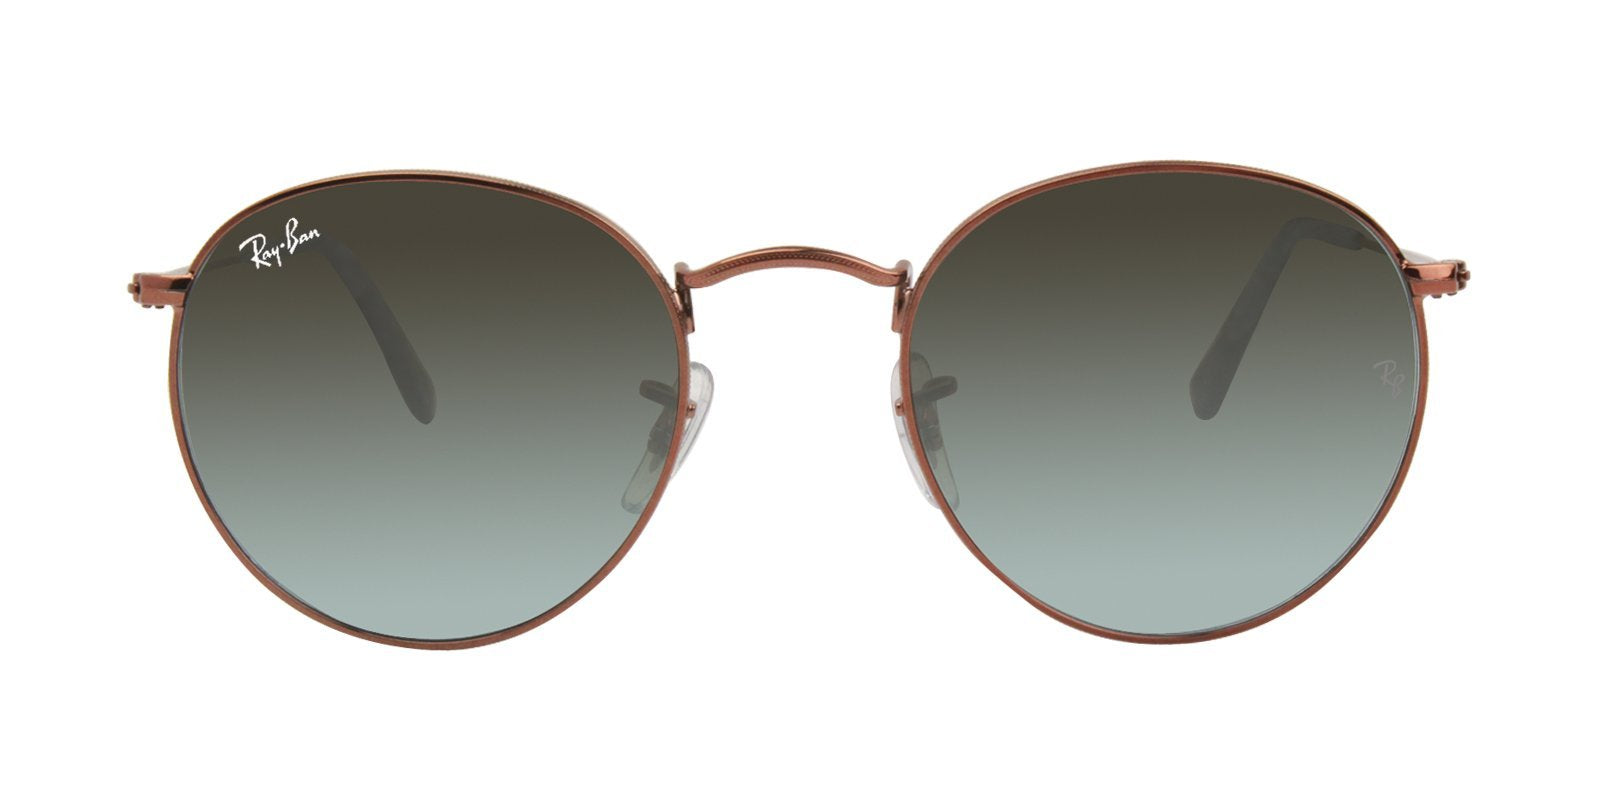 Ray Ban - Round Metal Brown Oval Unisex Sunglasses - 50mm-Sunglasses-Designer Eyes